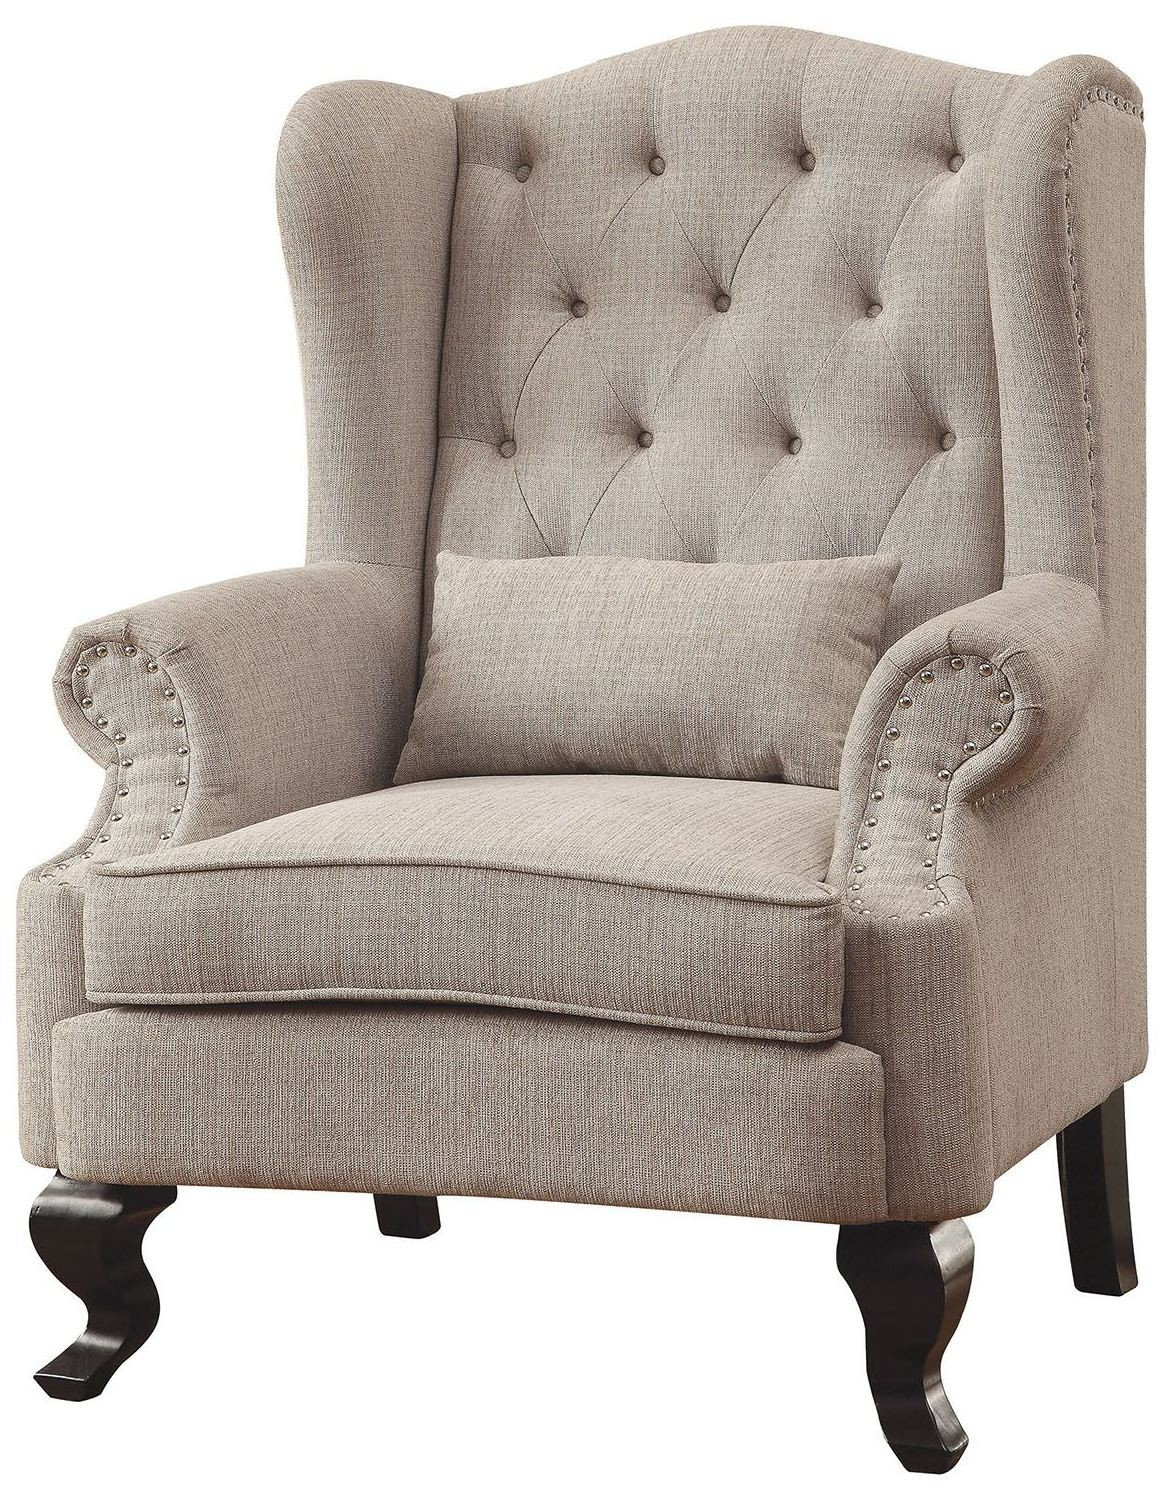 accent chairs under 150 2 target dining willow beige chair cm ac6271bg ch furniture of